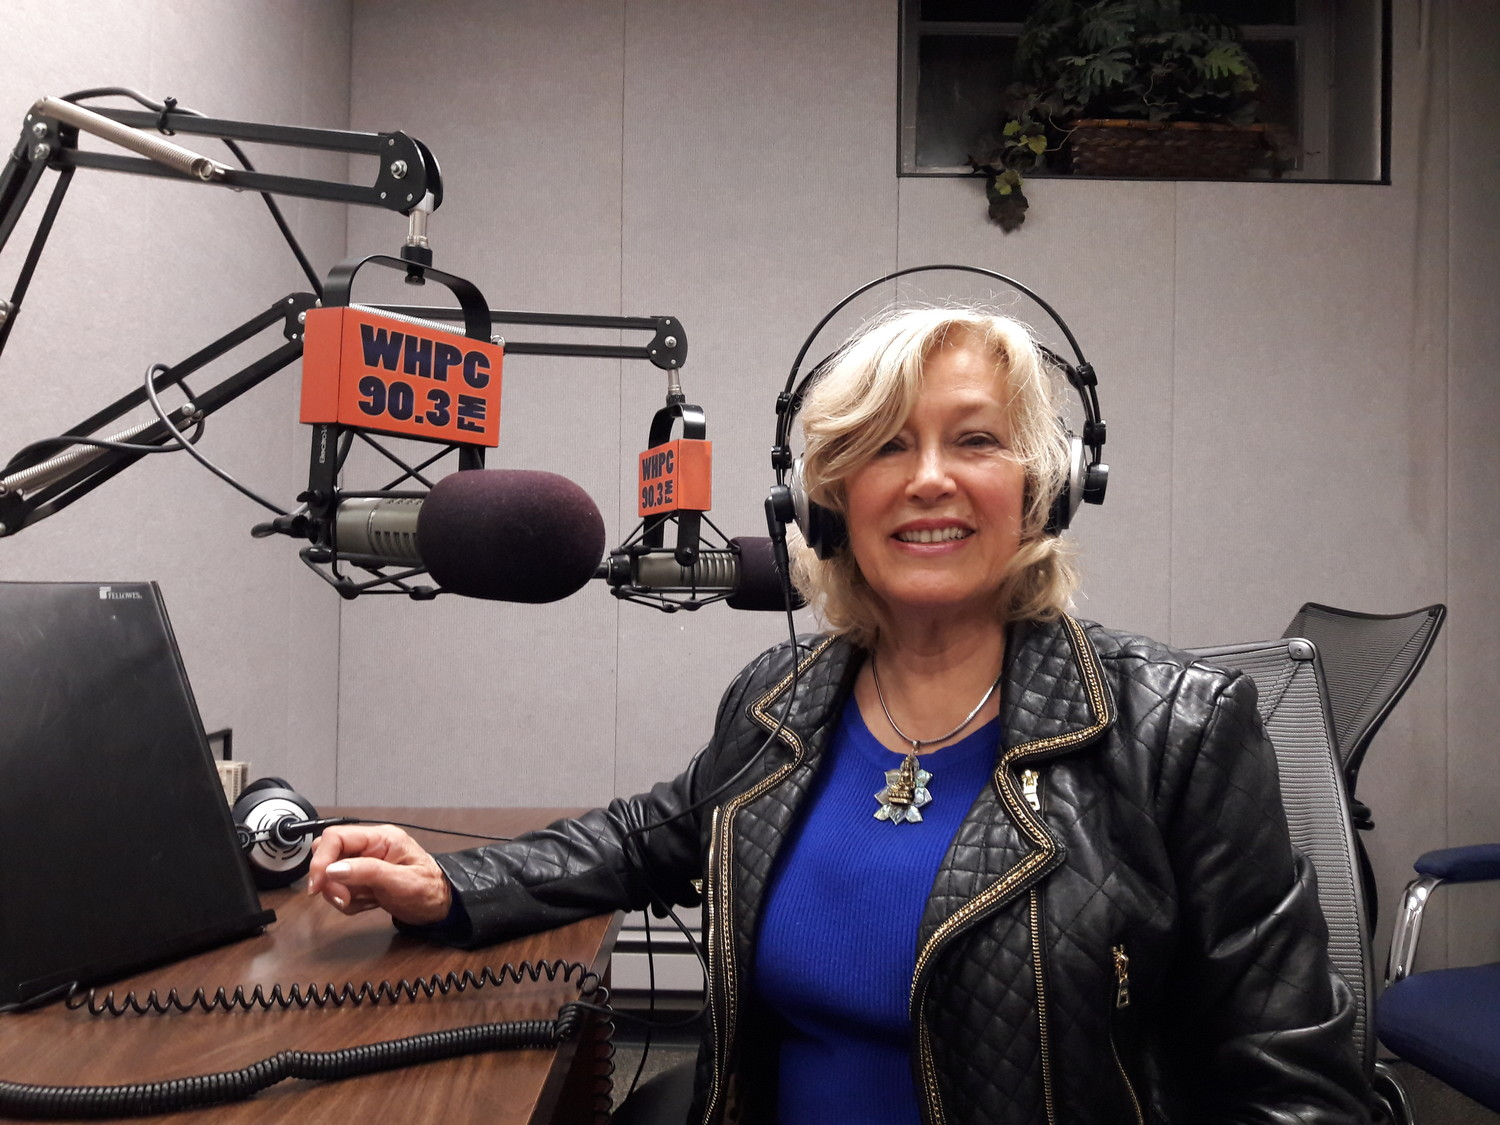 Victoria Crosby records her Elvis Tribute Show twice a year from NCC's radio station WHPC, 90.3 FM in Garden City.